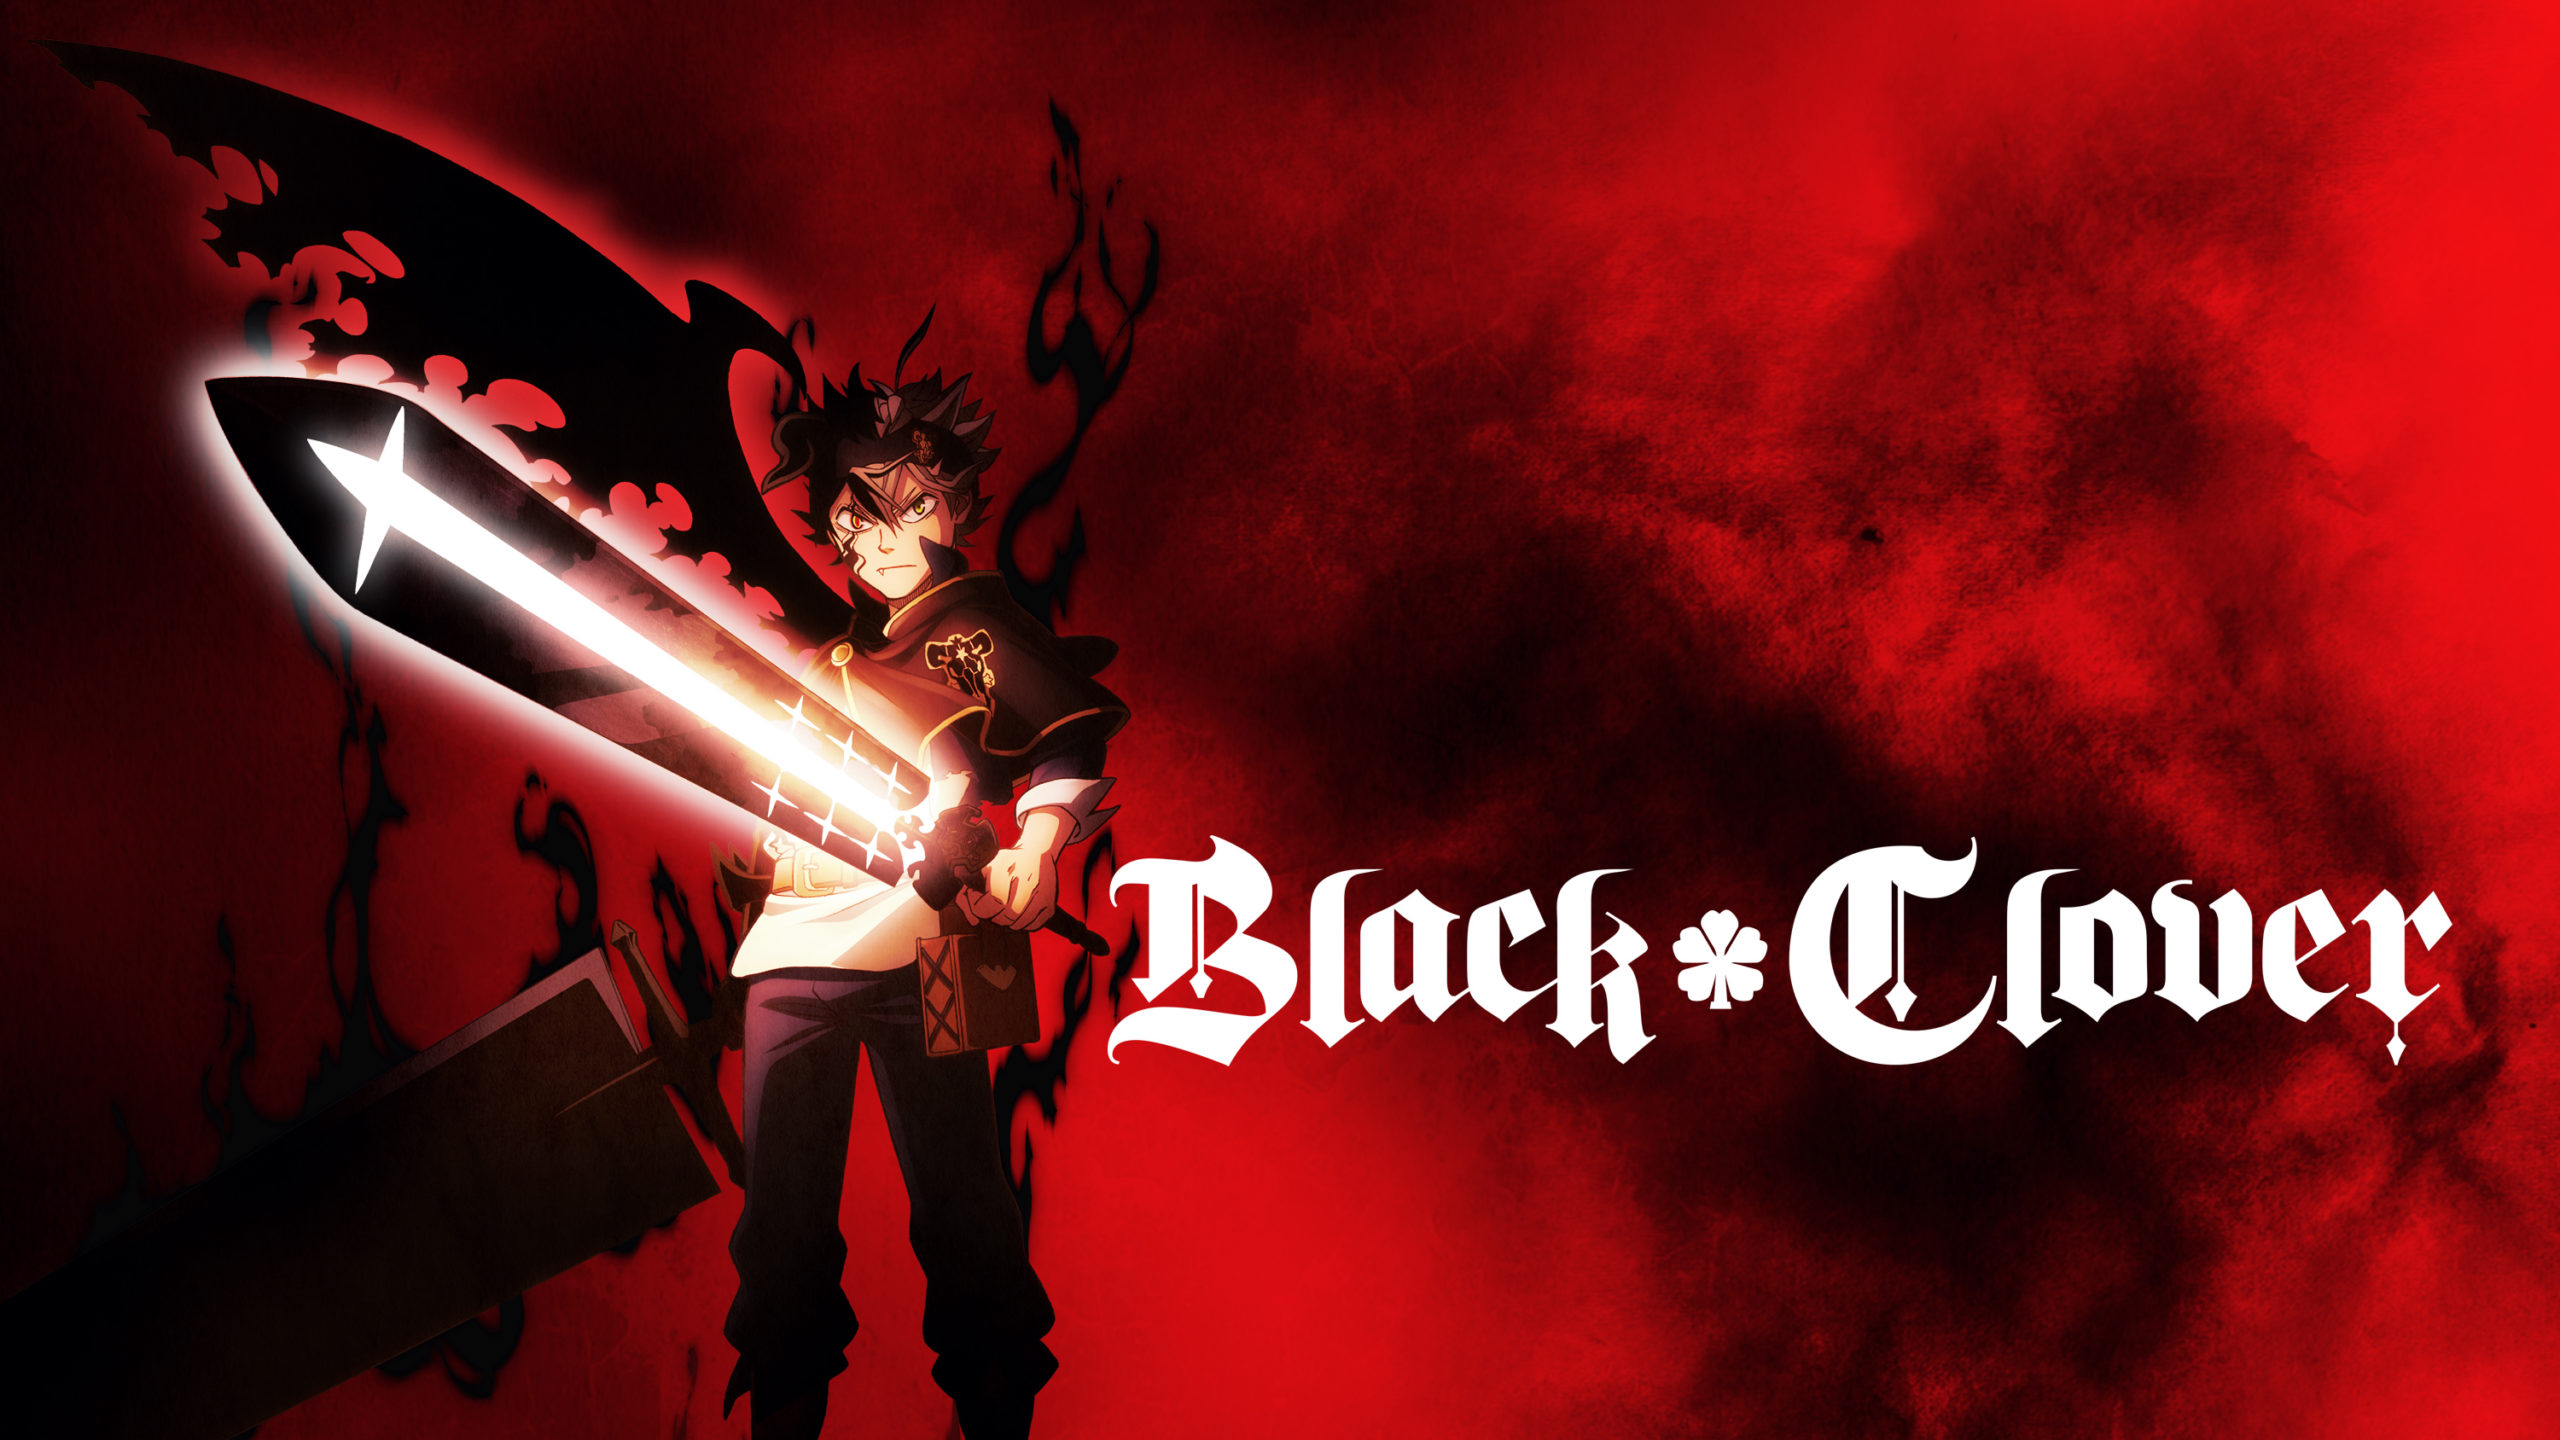 Black Clover Chapter 278 Release Date Delay, Raw Scans and Read Online